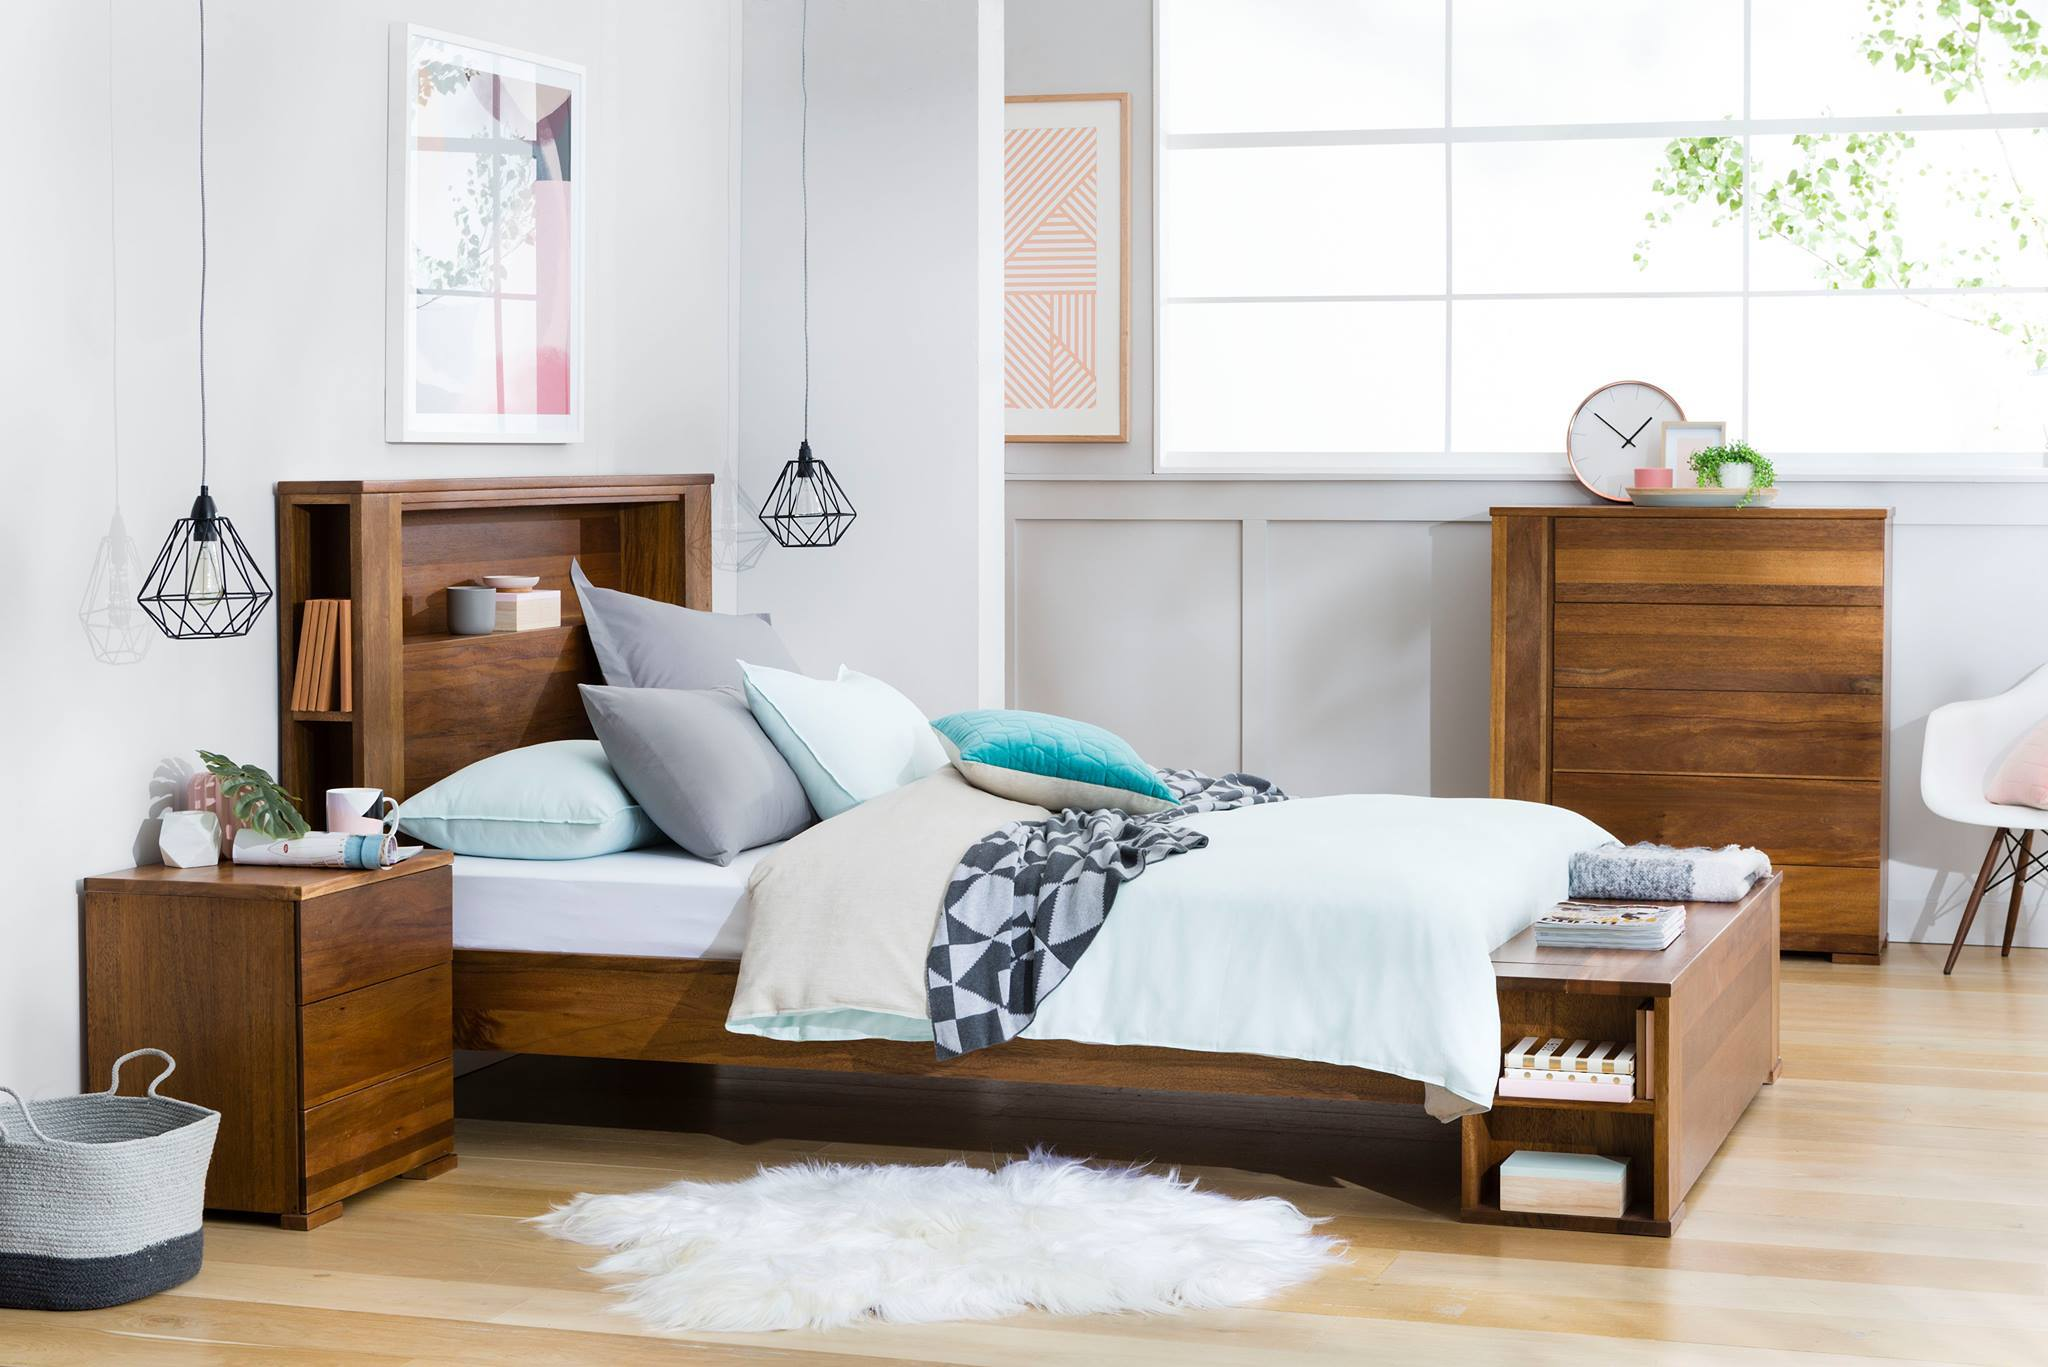 Awe Inspiring Forty Winks Natural Latex Mattress Store Port Macquarie Nsw Alphanode Cool Chair Designs And Ideas Alphanodeonline